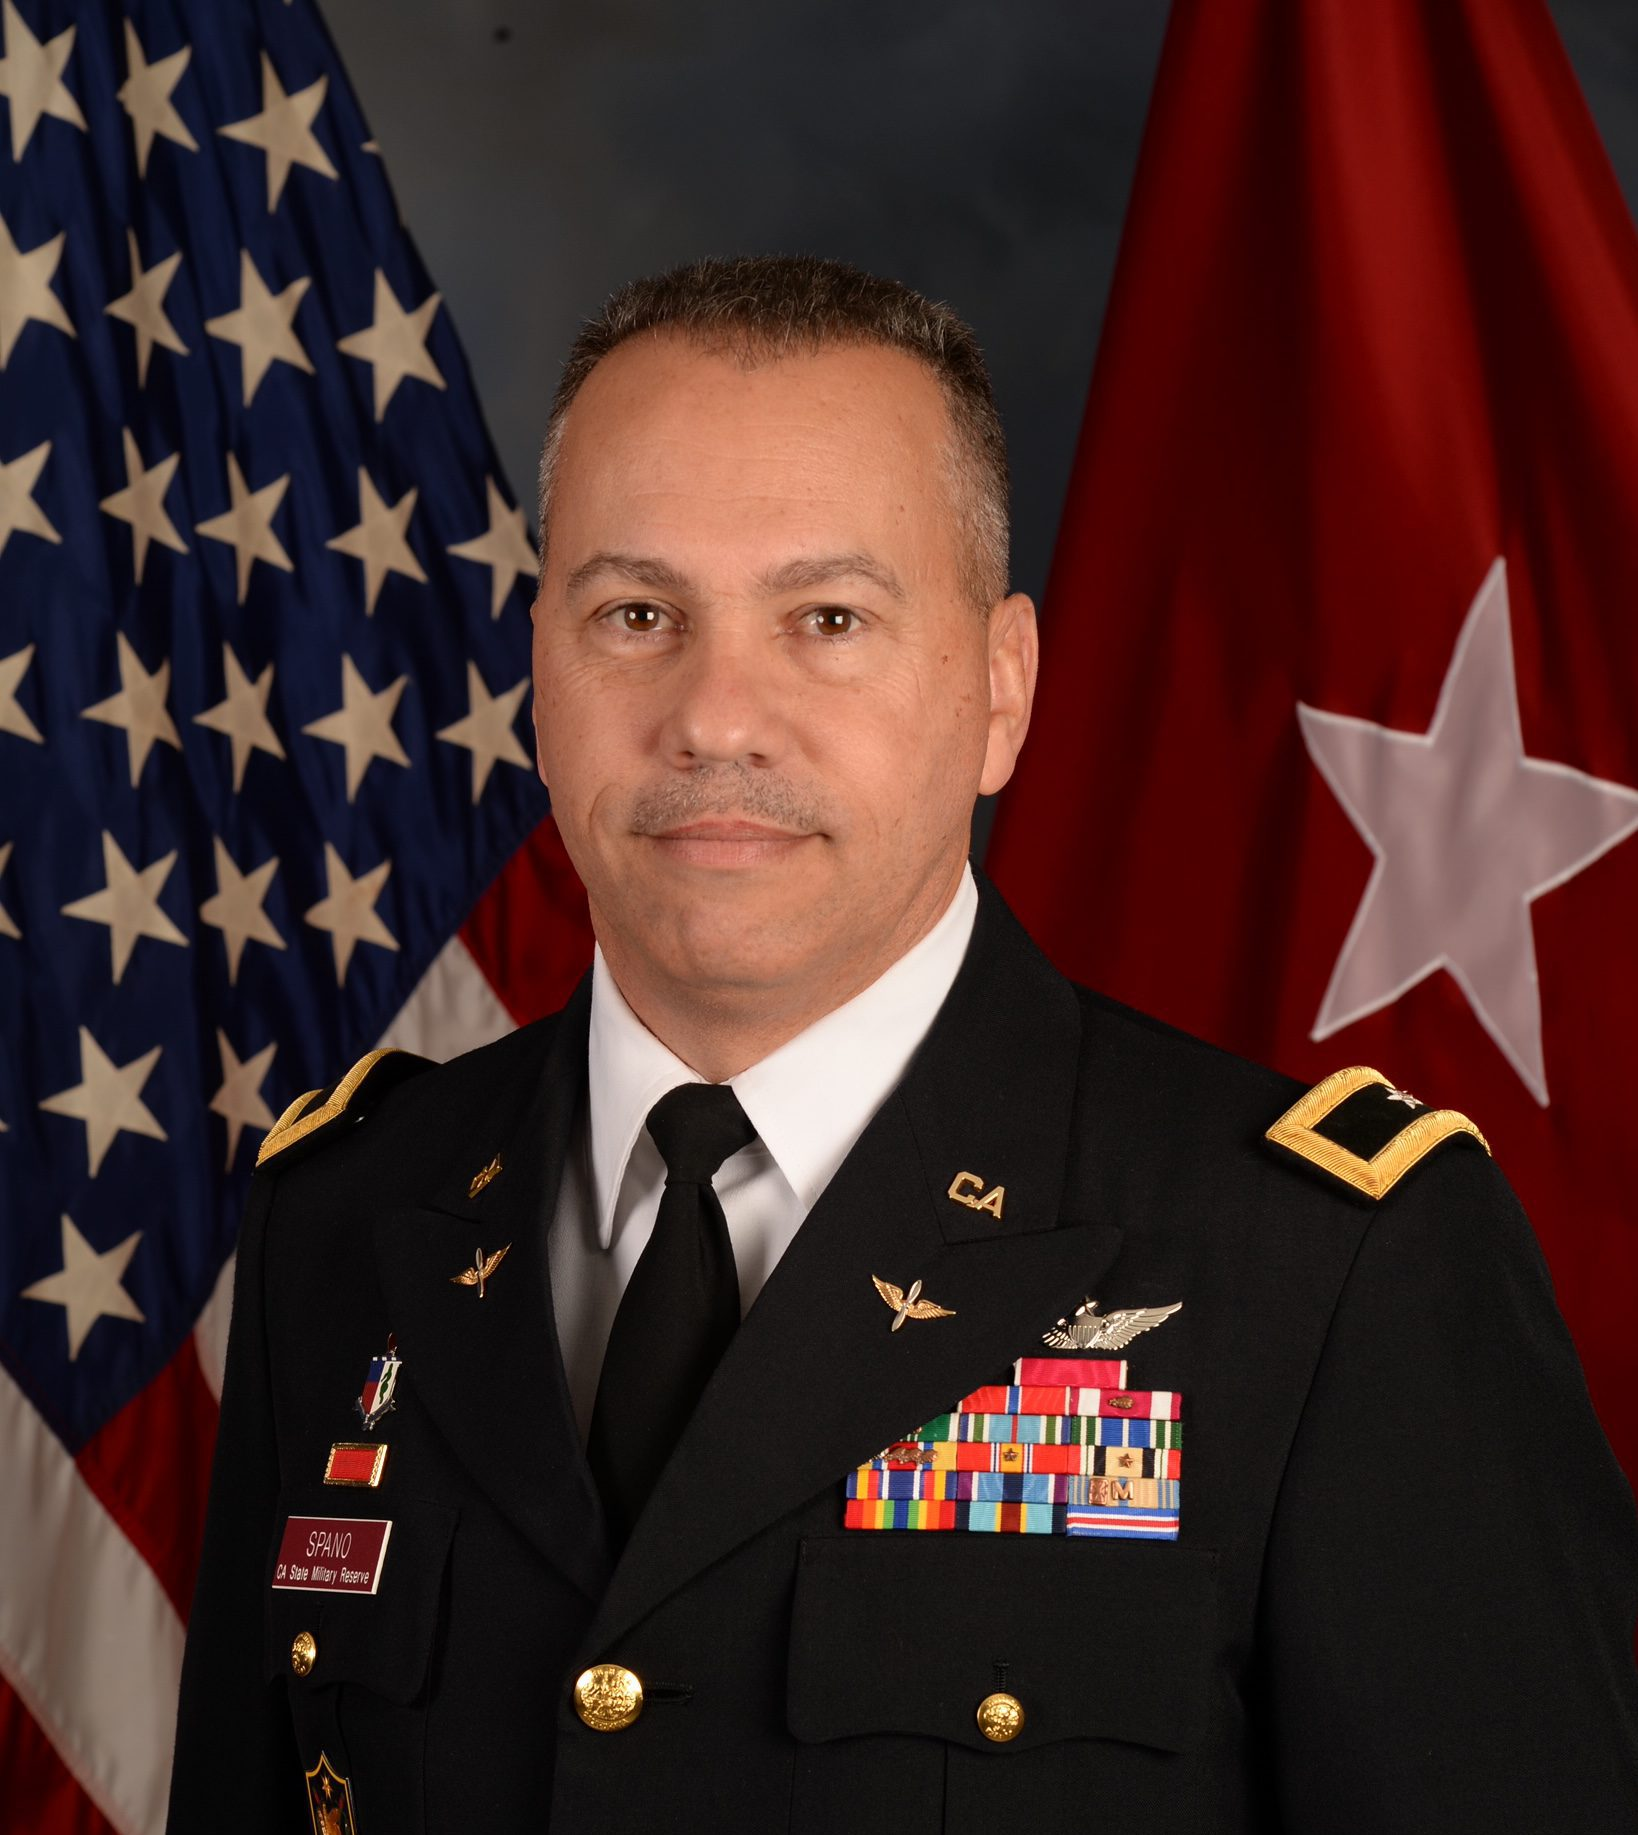 photo of Brigadier General Robert Spano